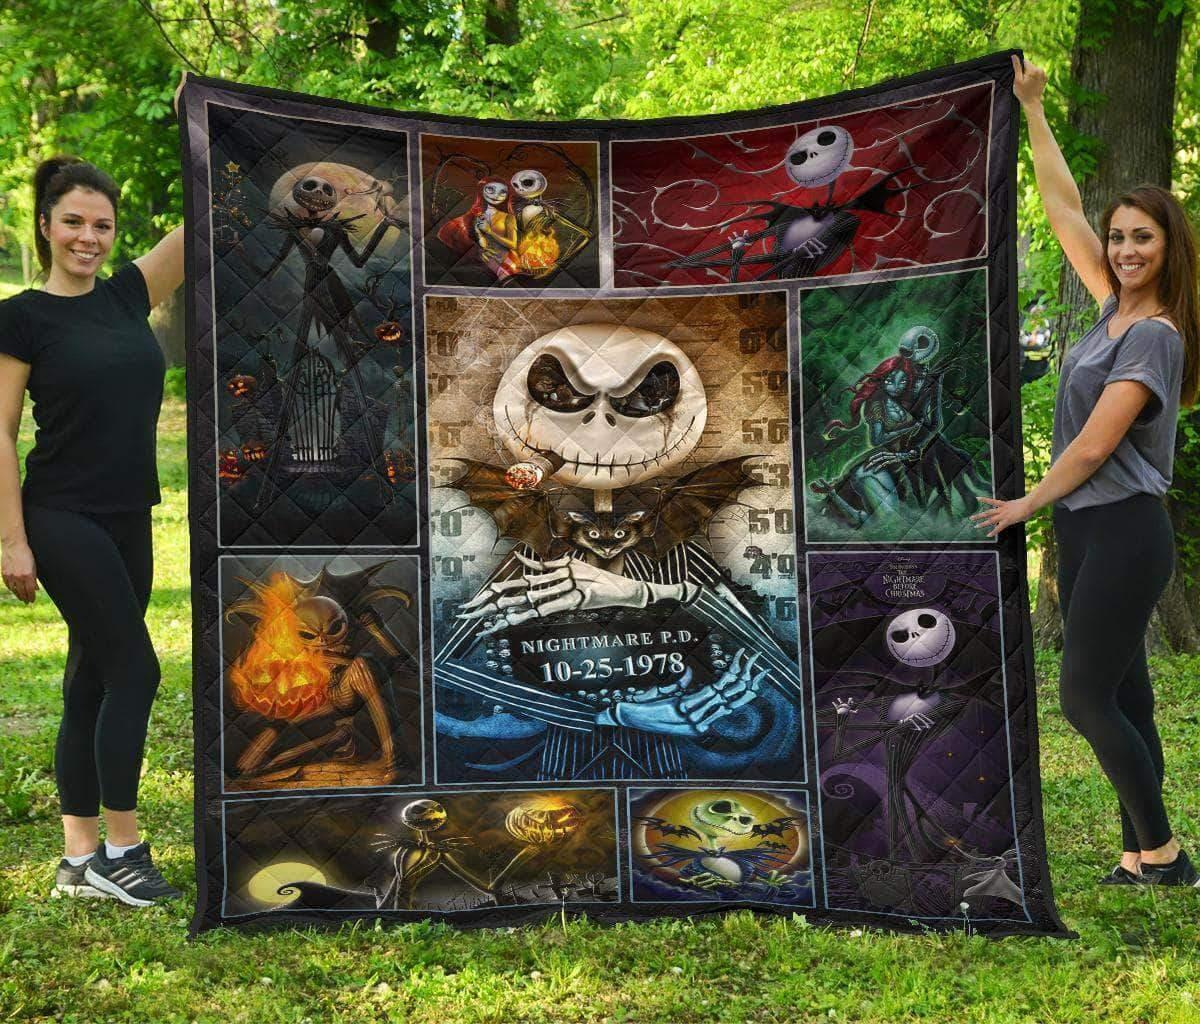 The nightmare before christmas jack skellington quilt - super king